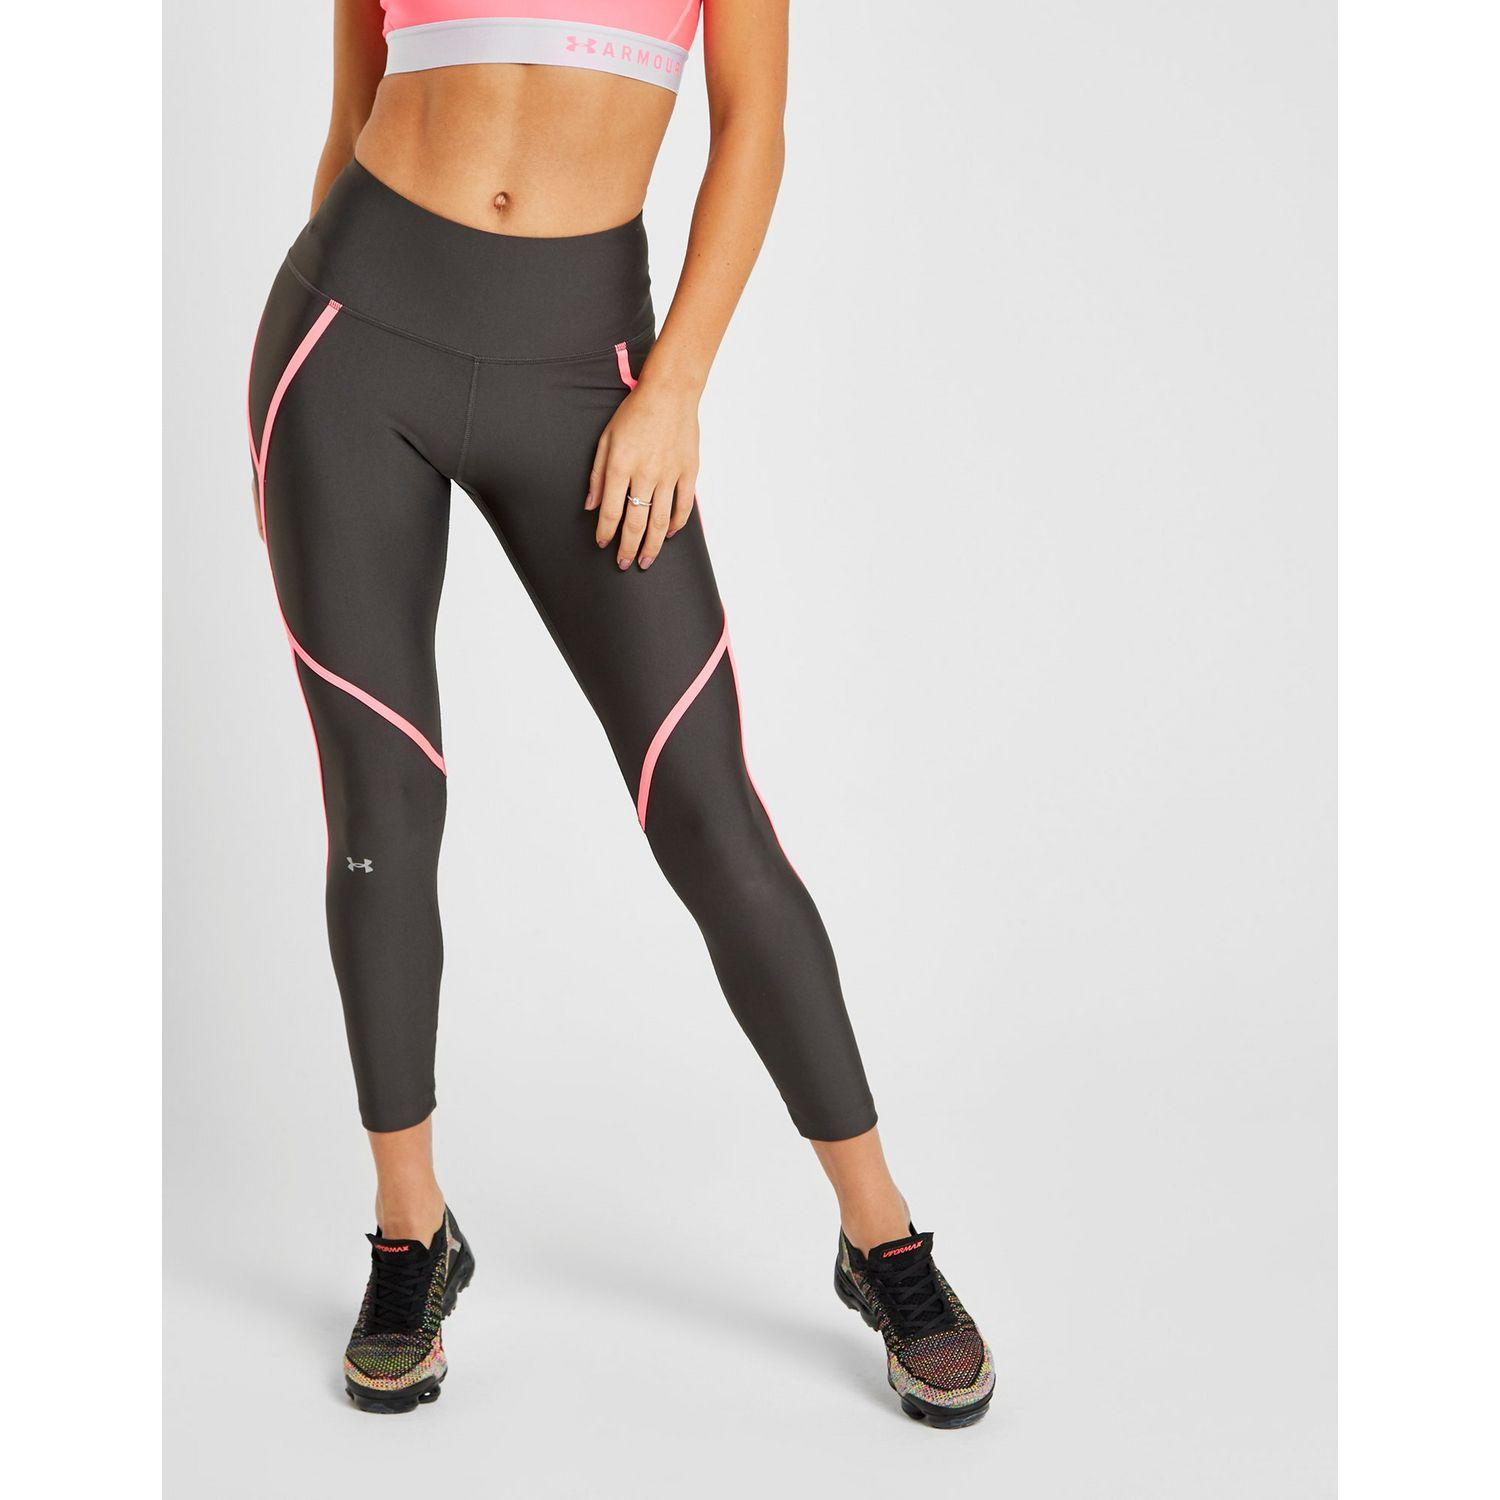 ff416d03181b4a Under Armour Piping Tights in Gray - Lyst